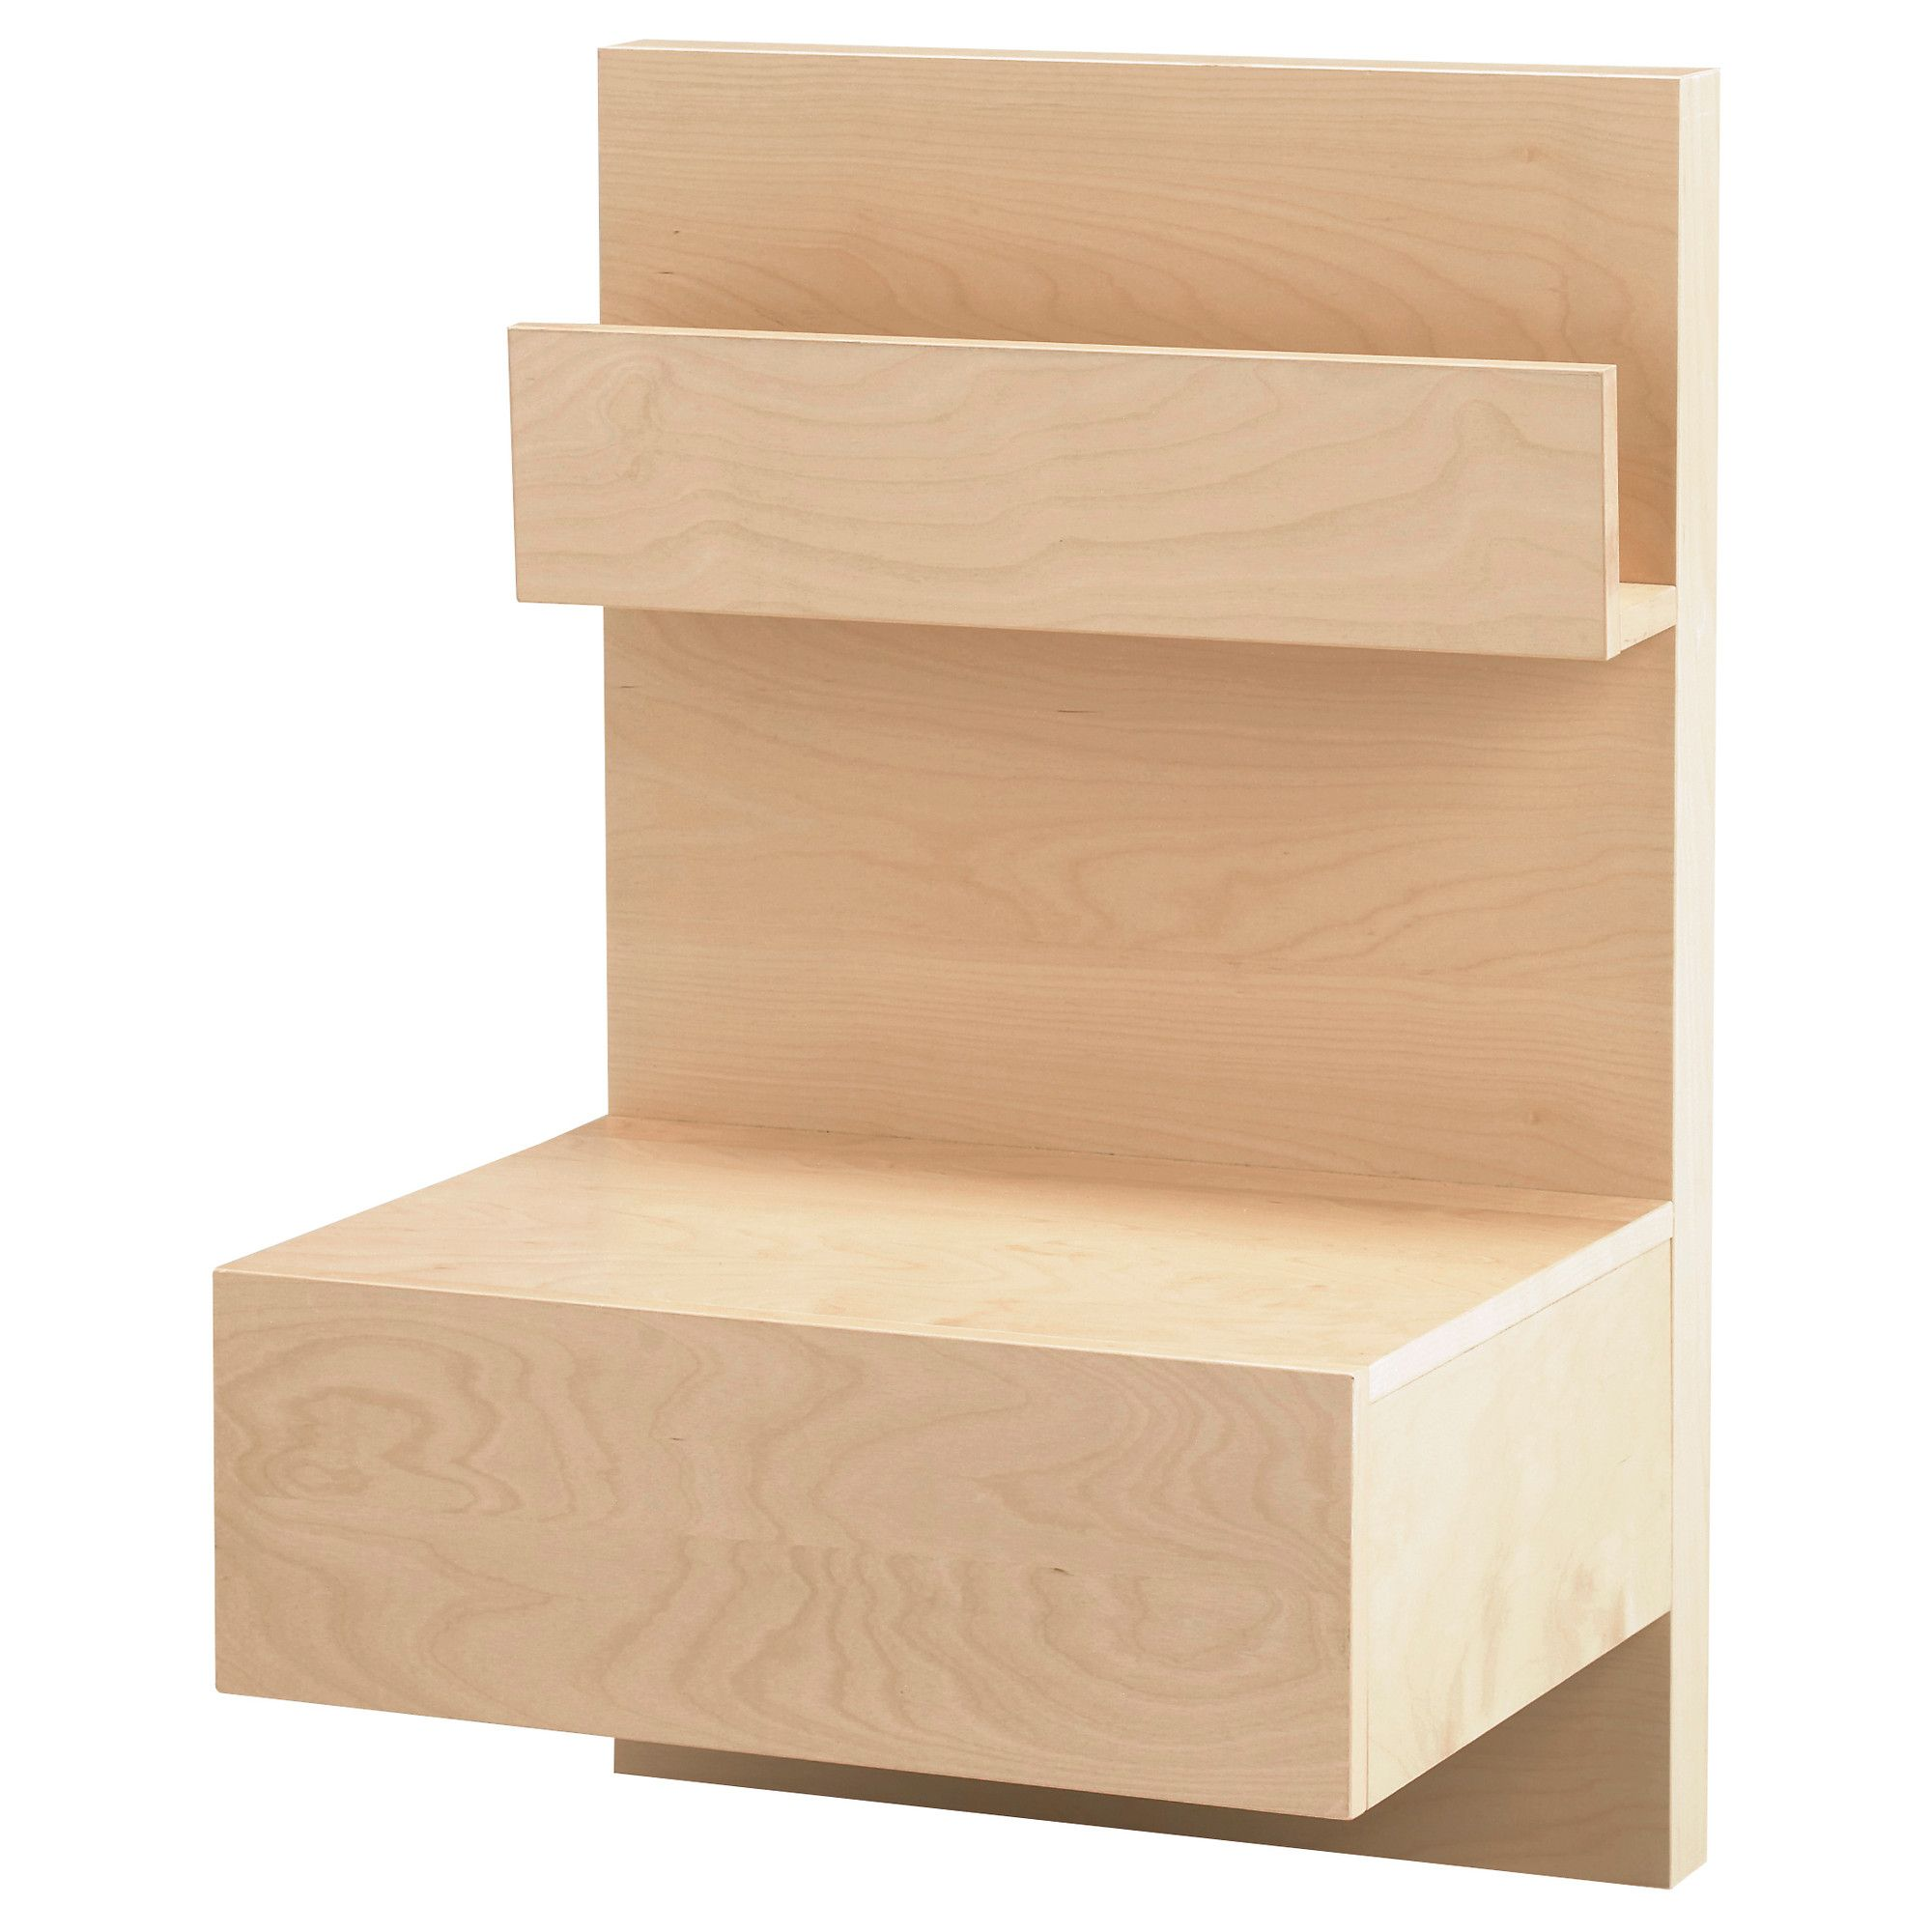 Malm nightstand birch veneer ikea for ryder 39 s room i will paint it ryder 39 s bedroom - Malm bed with nightstands ...